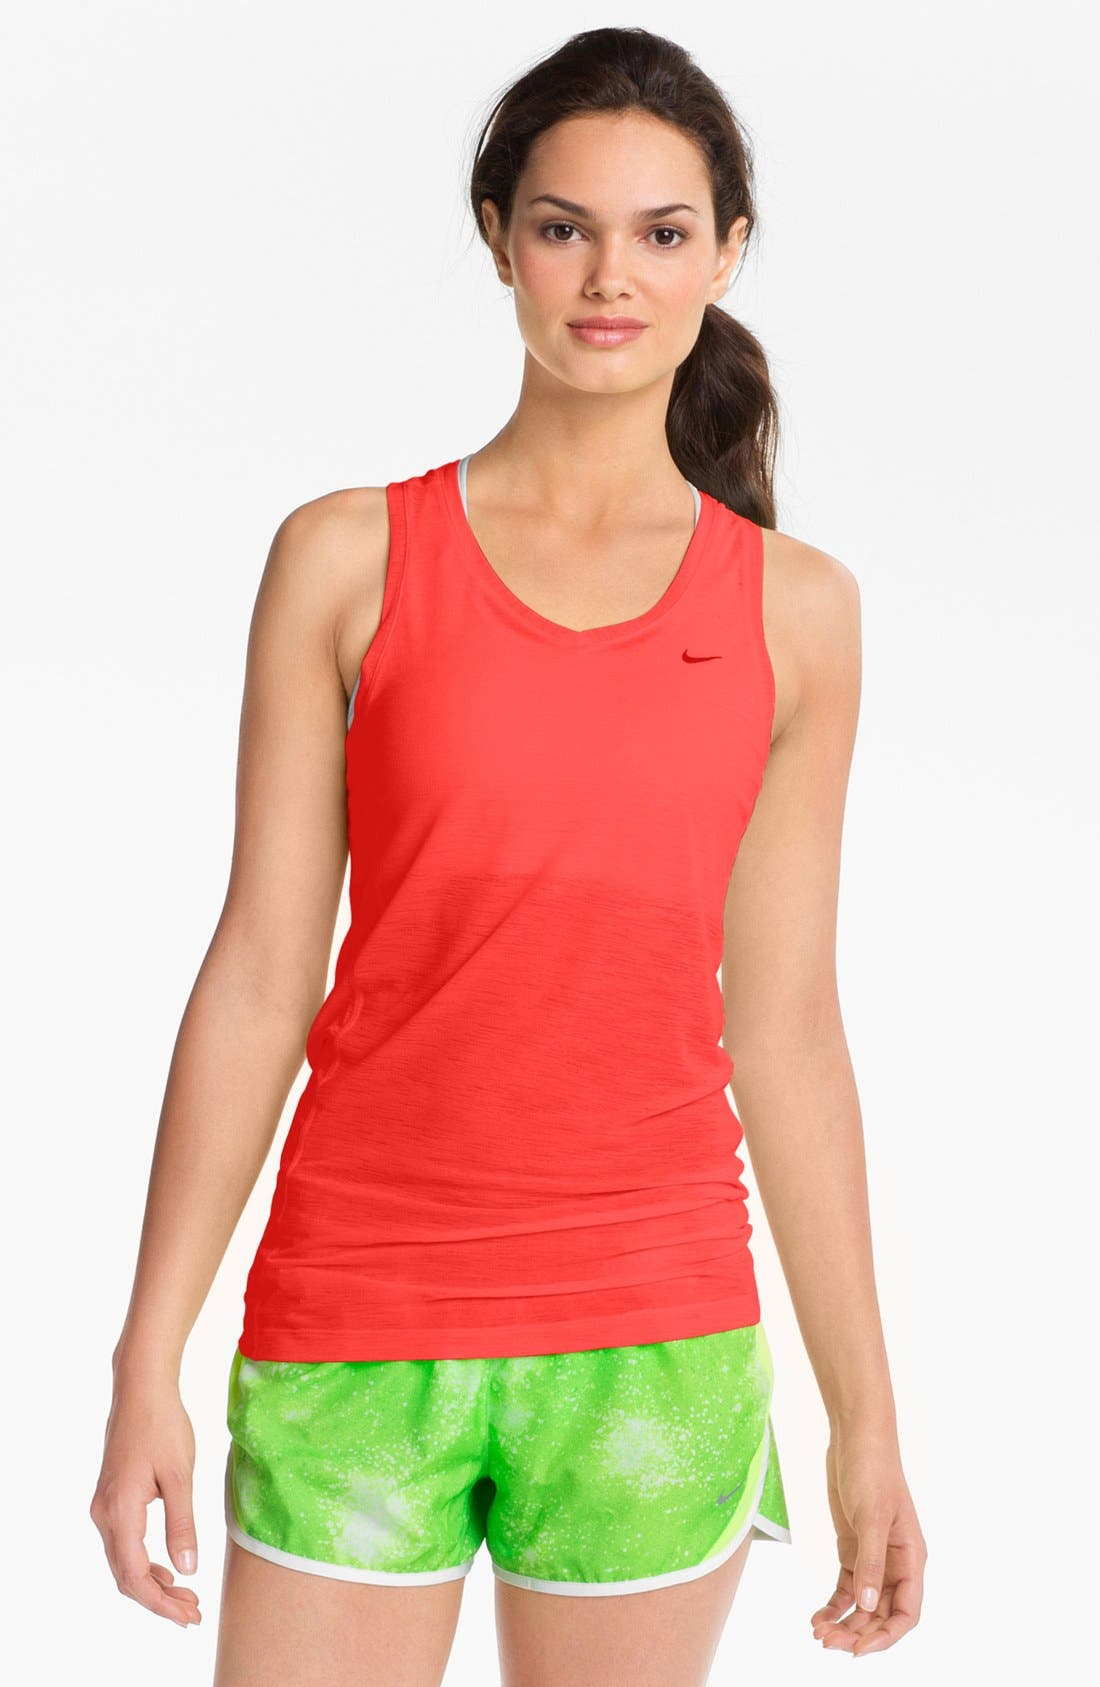 Alternate Image 1 Selected - Nike 'Breeze' Racerback Tank